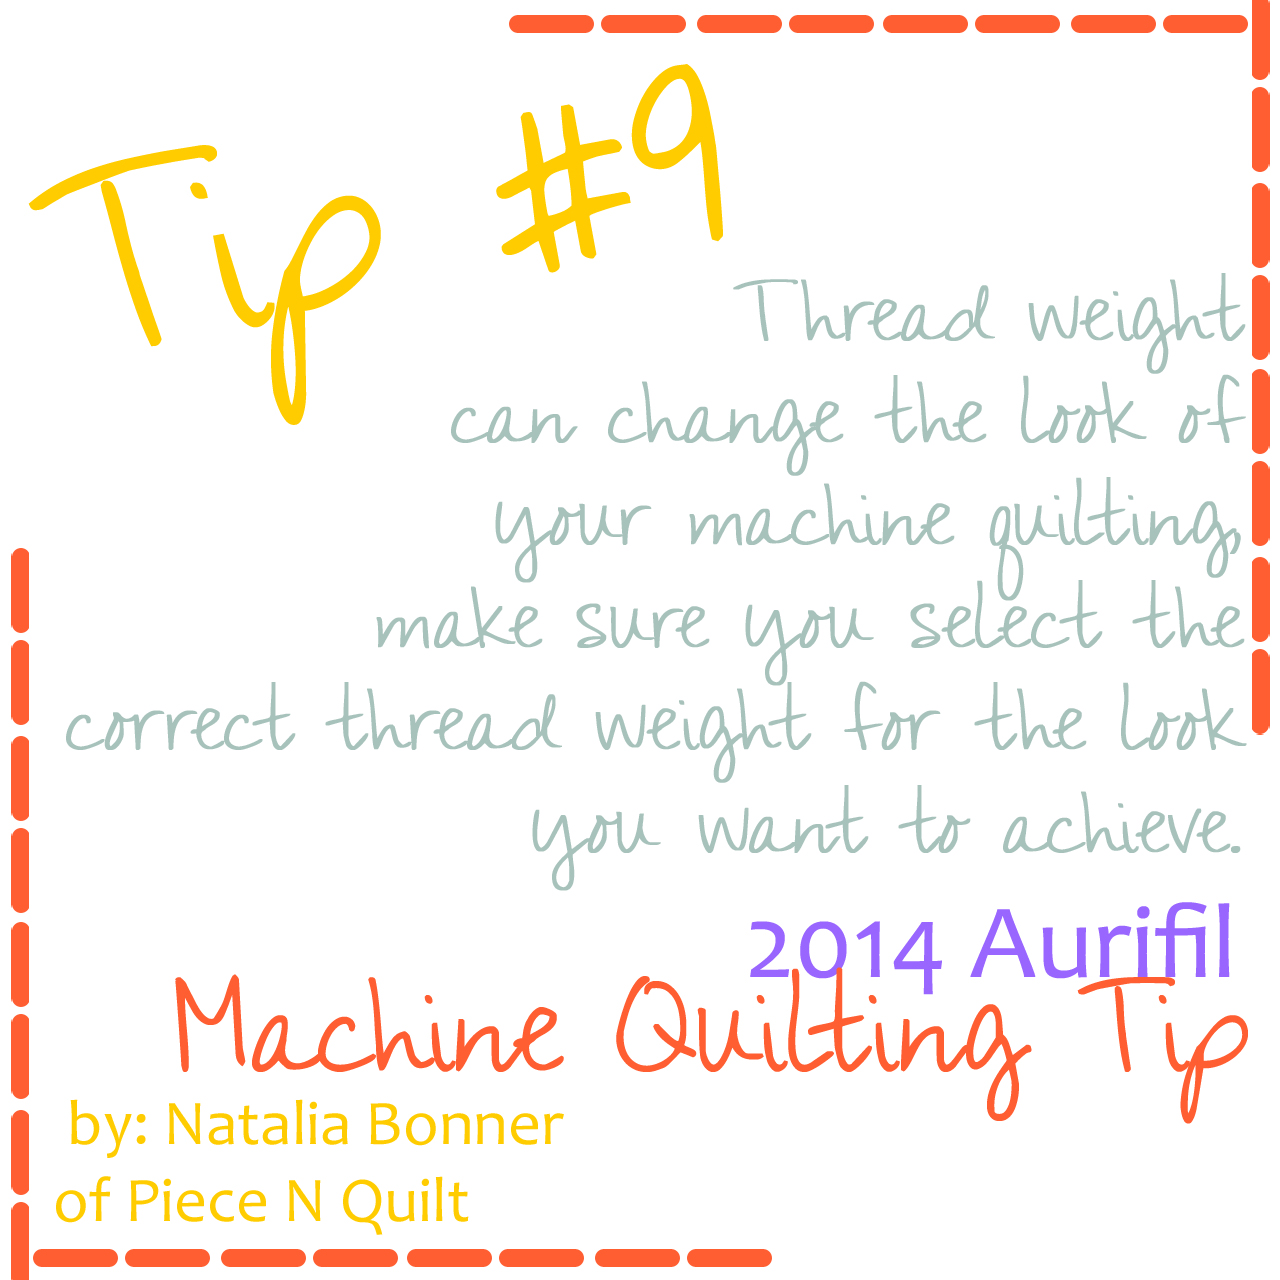 machine quilting tip for aurifil number 9-1